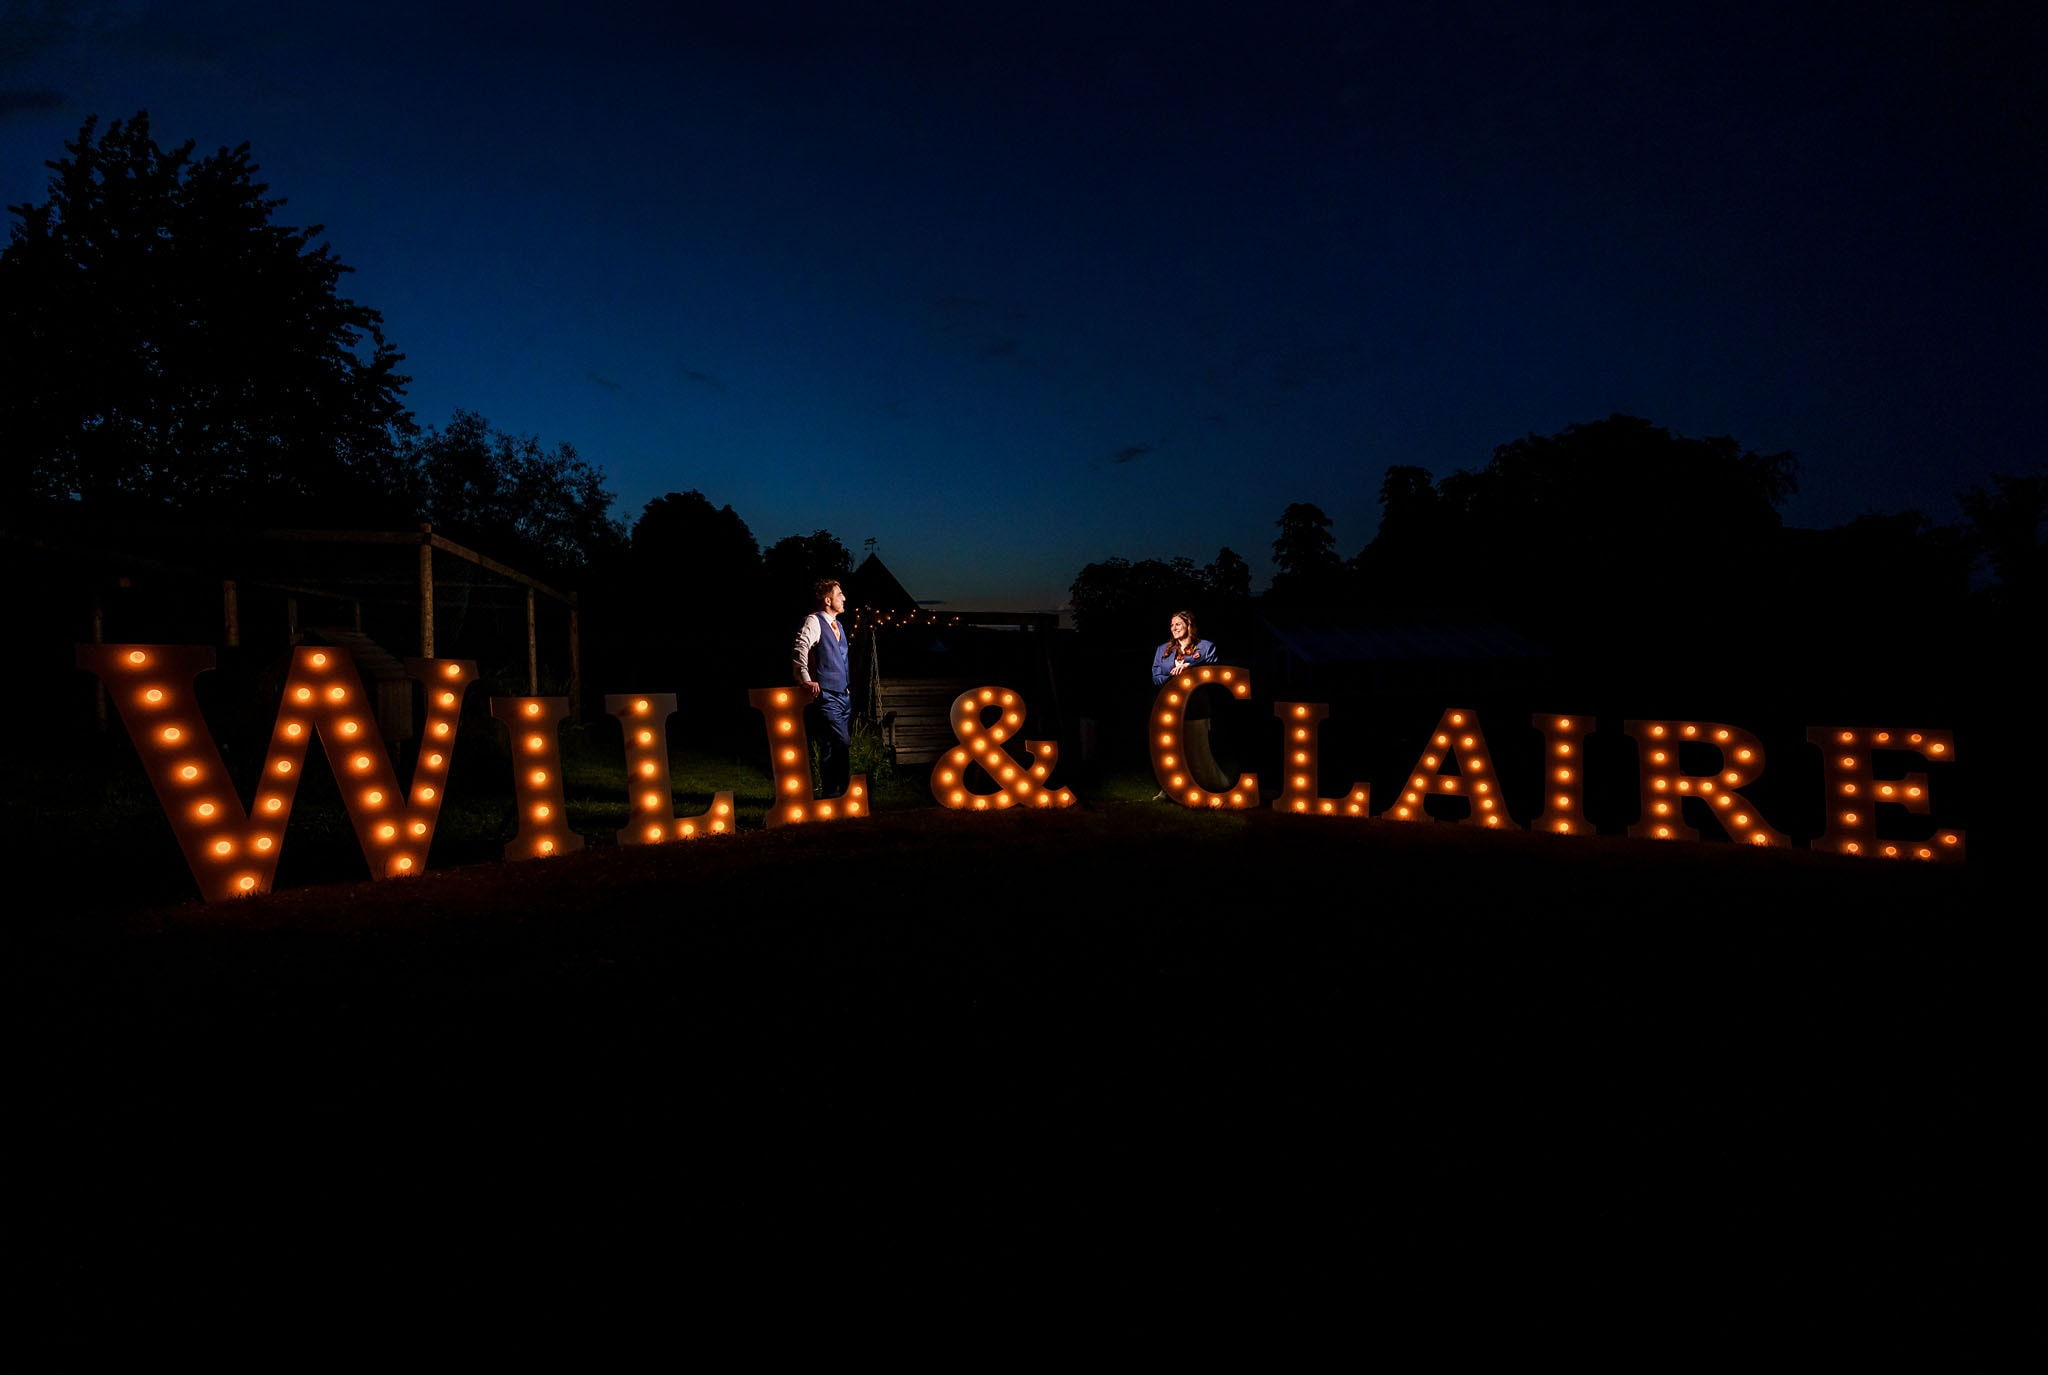 night time portrait of the bride and groom with their light up letters